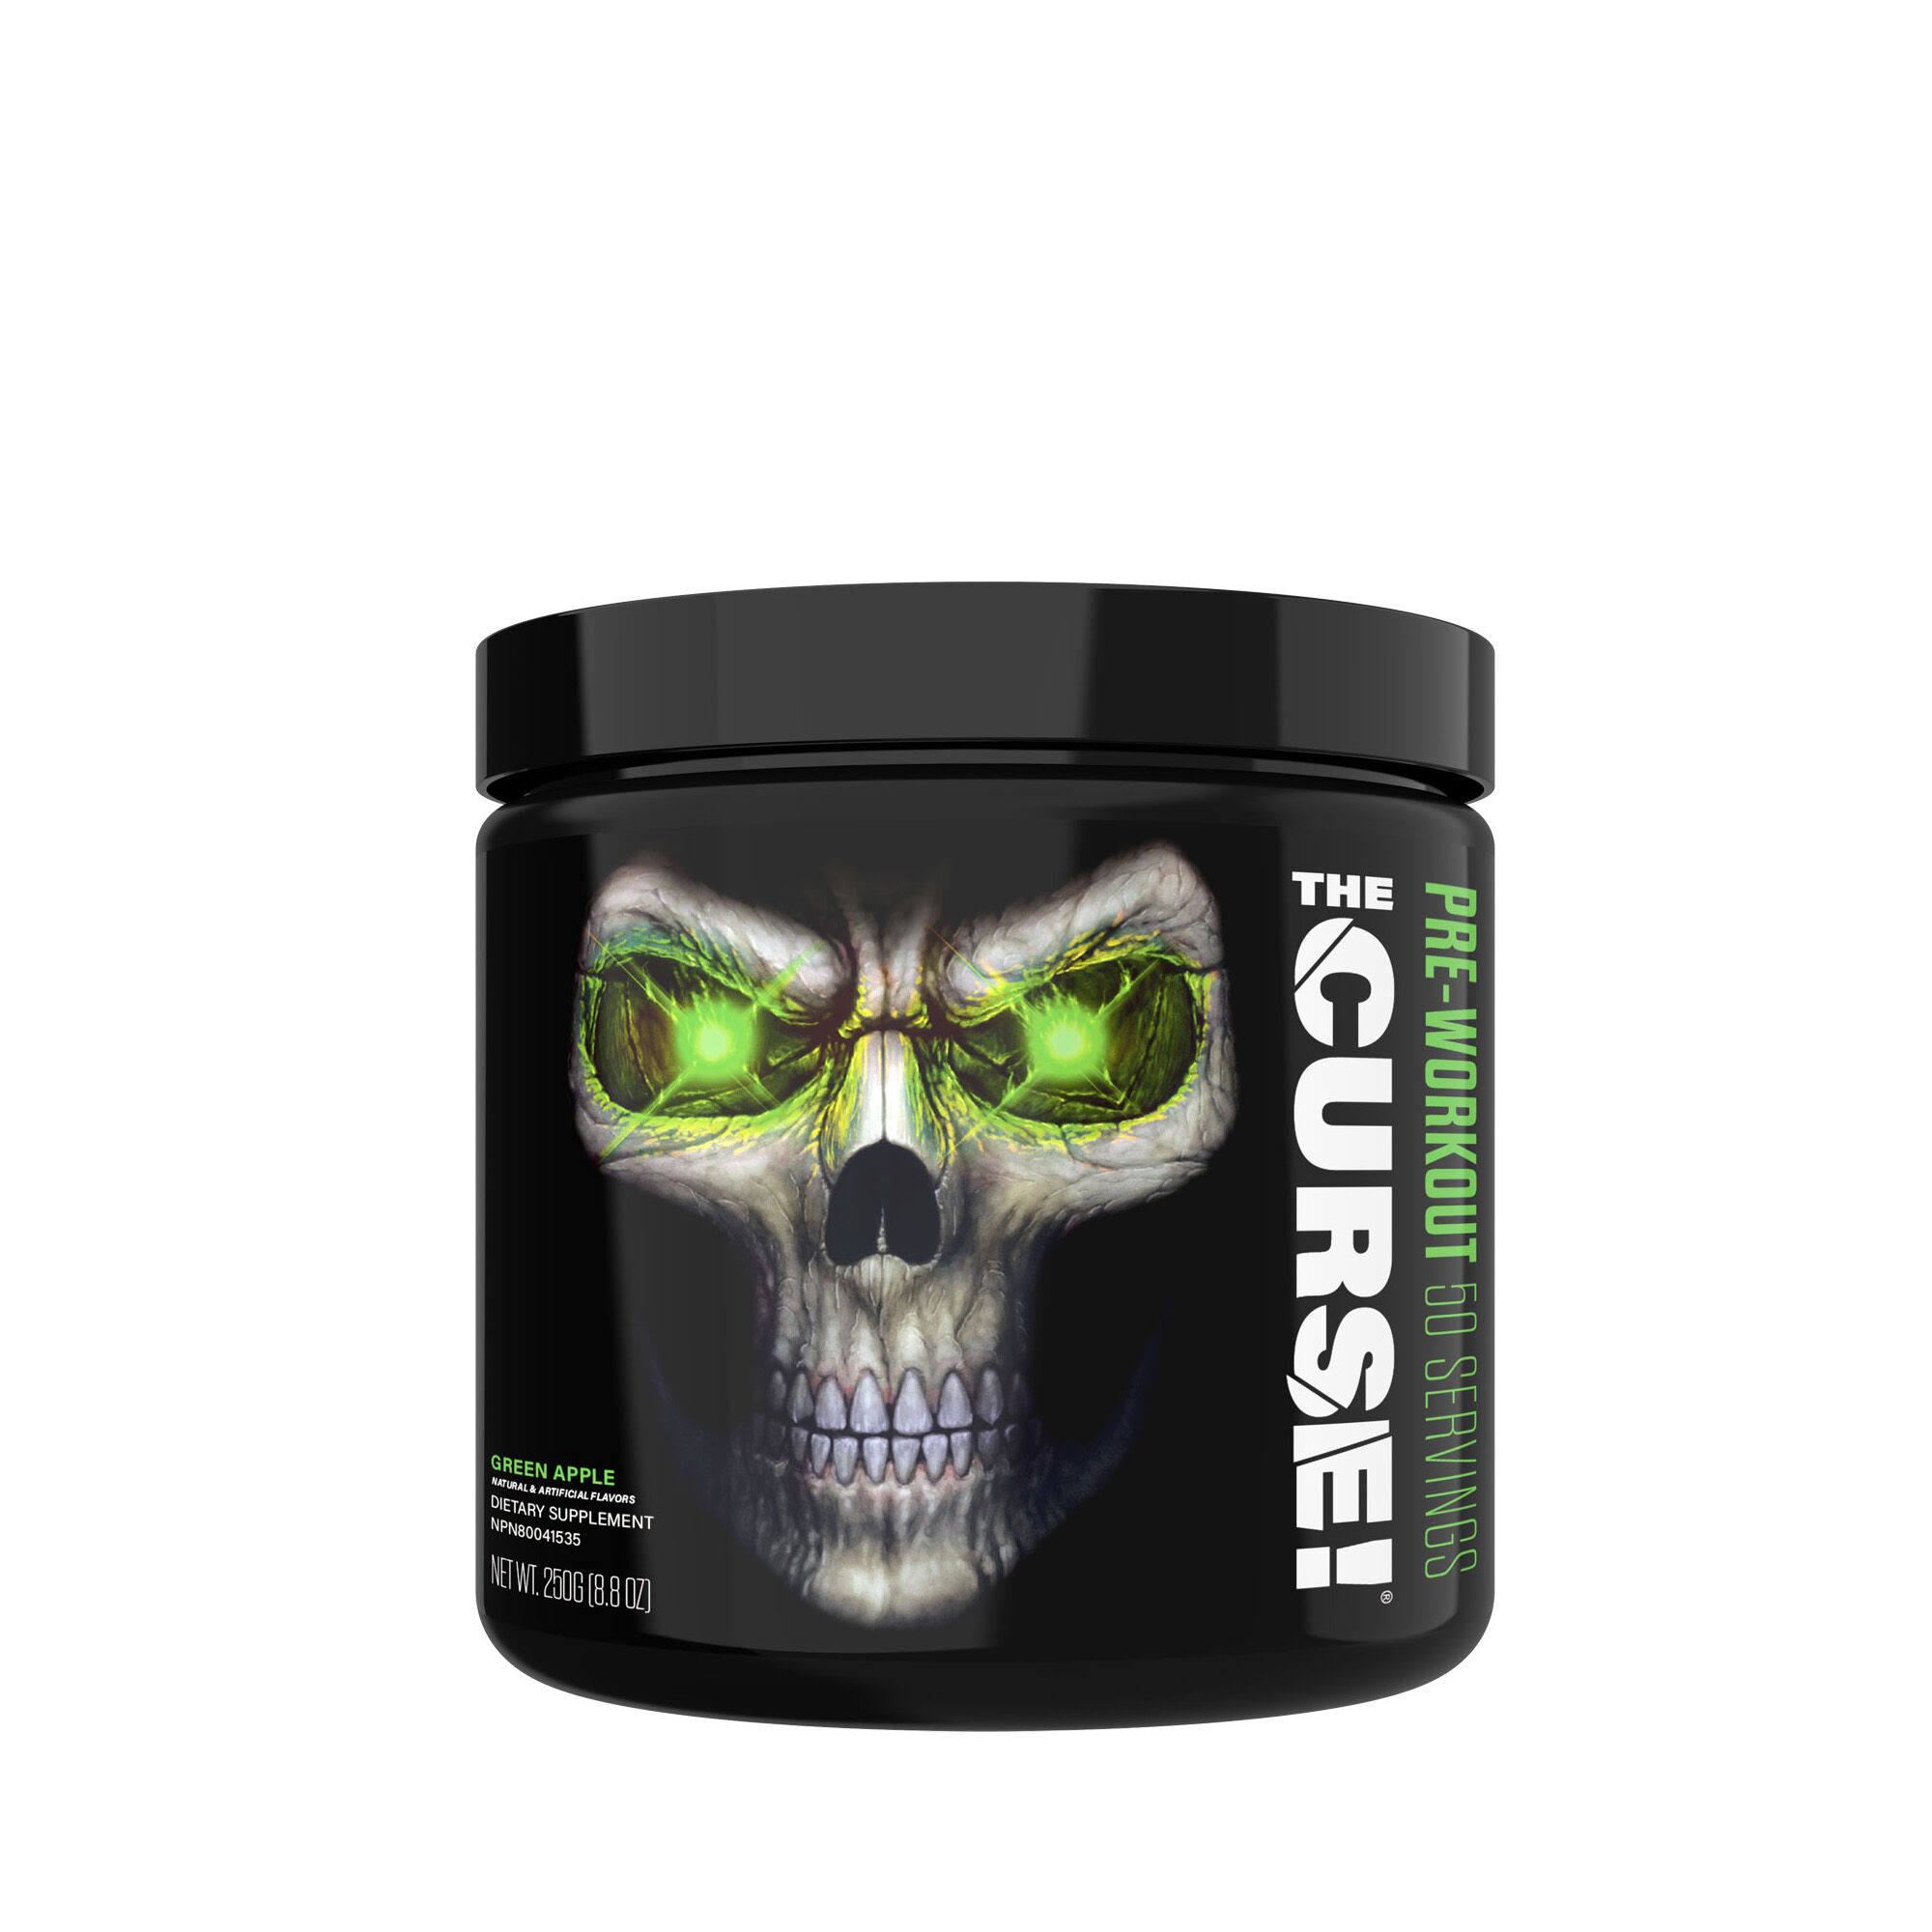 The Curse Pre Workout Dietary Supplement - Green Apple Envy, 250g